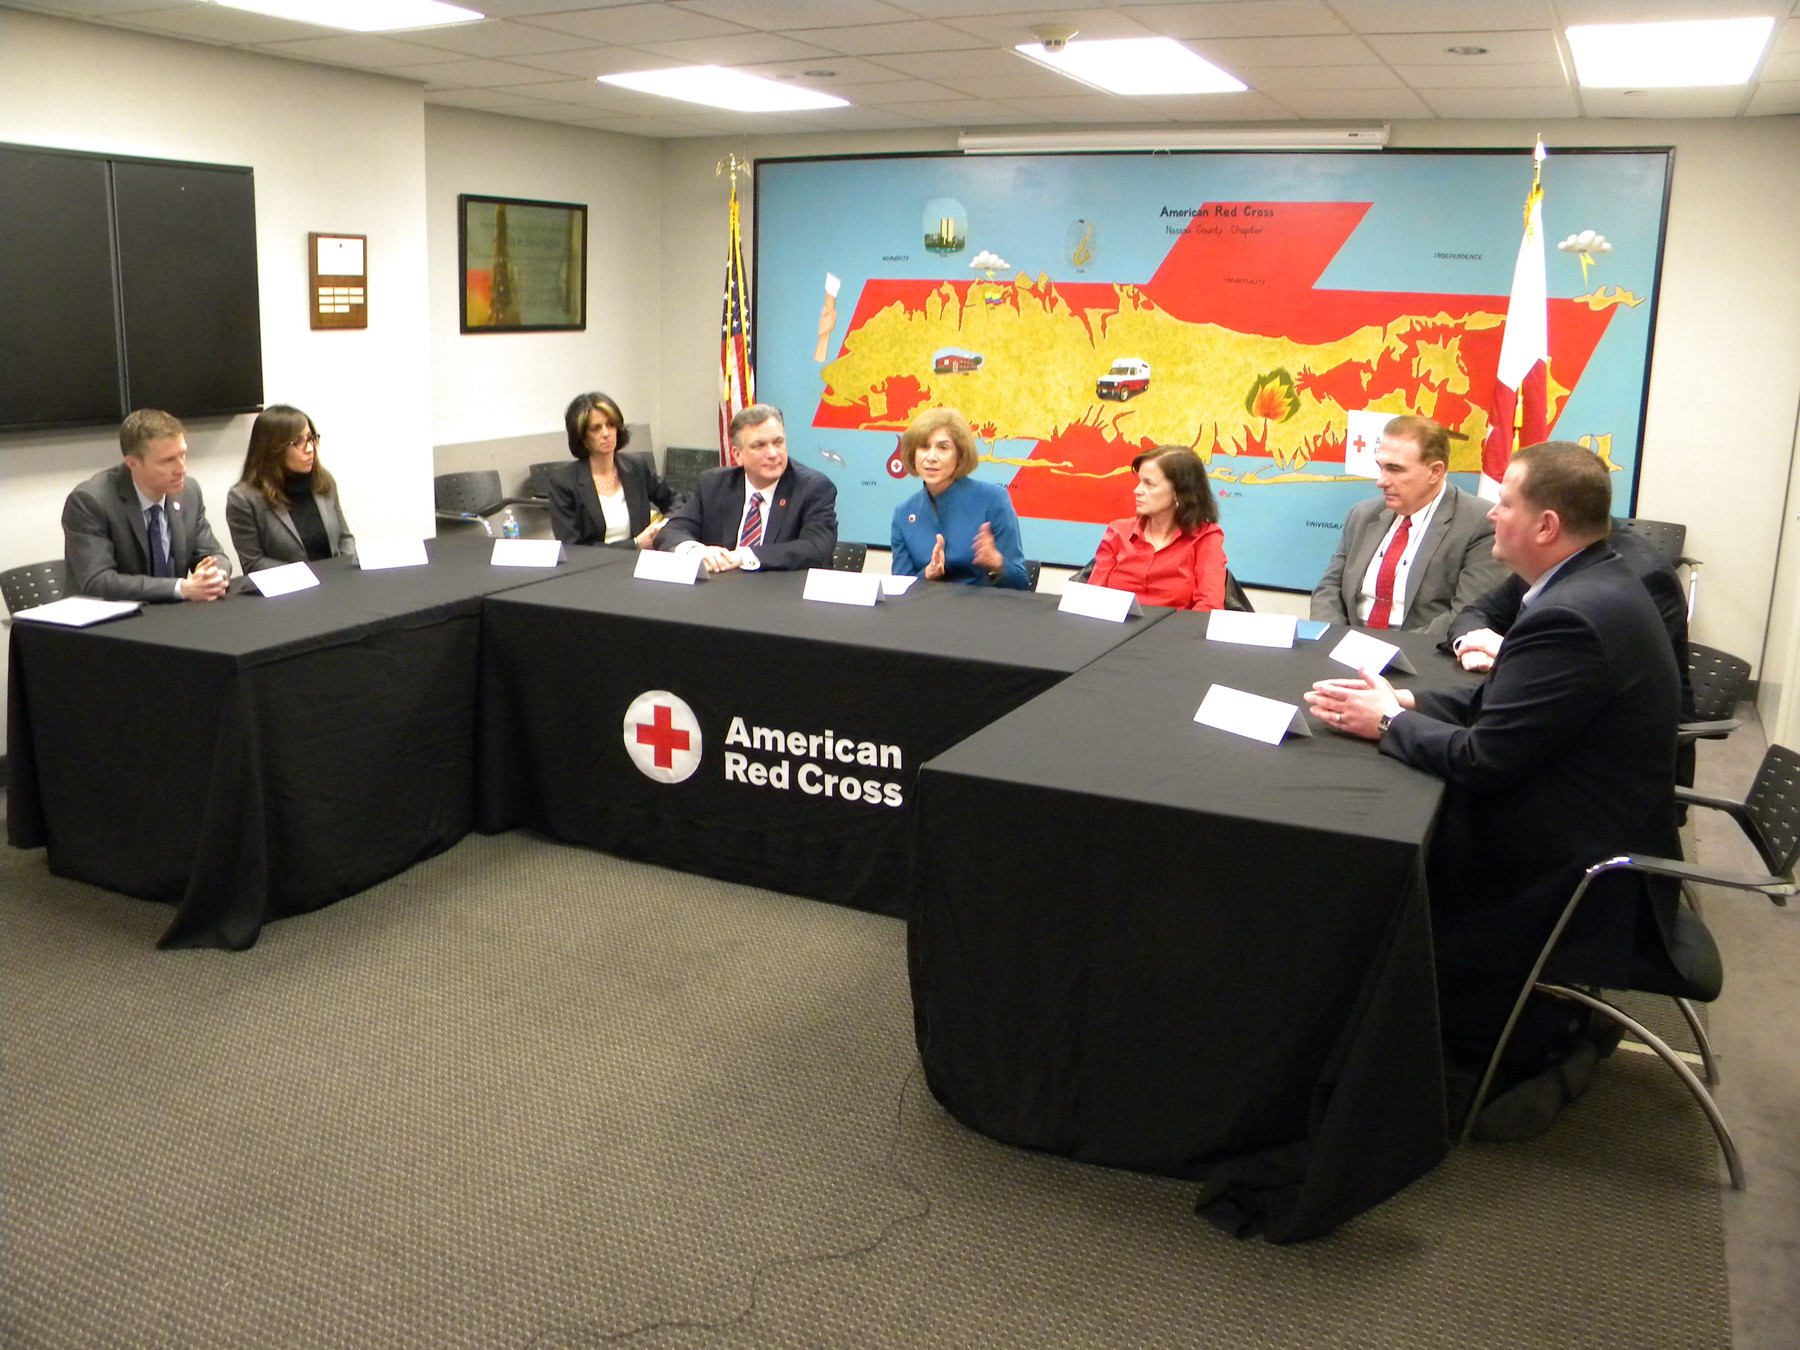 Red Cross officials and locals discuss the impact of Hurricane Sandy on Long Island.